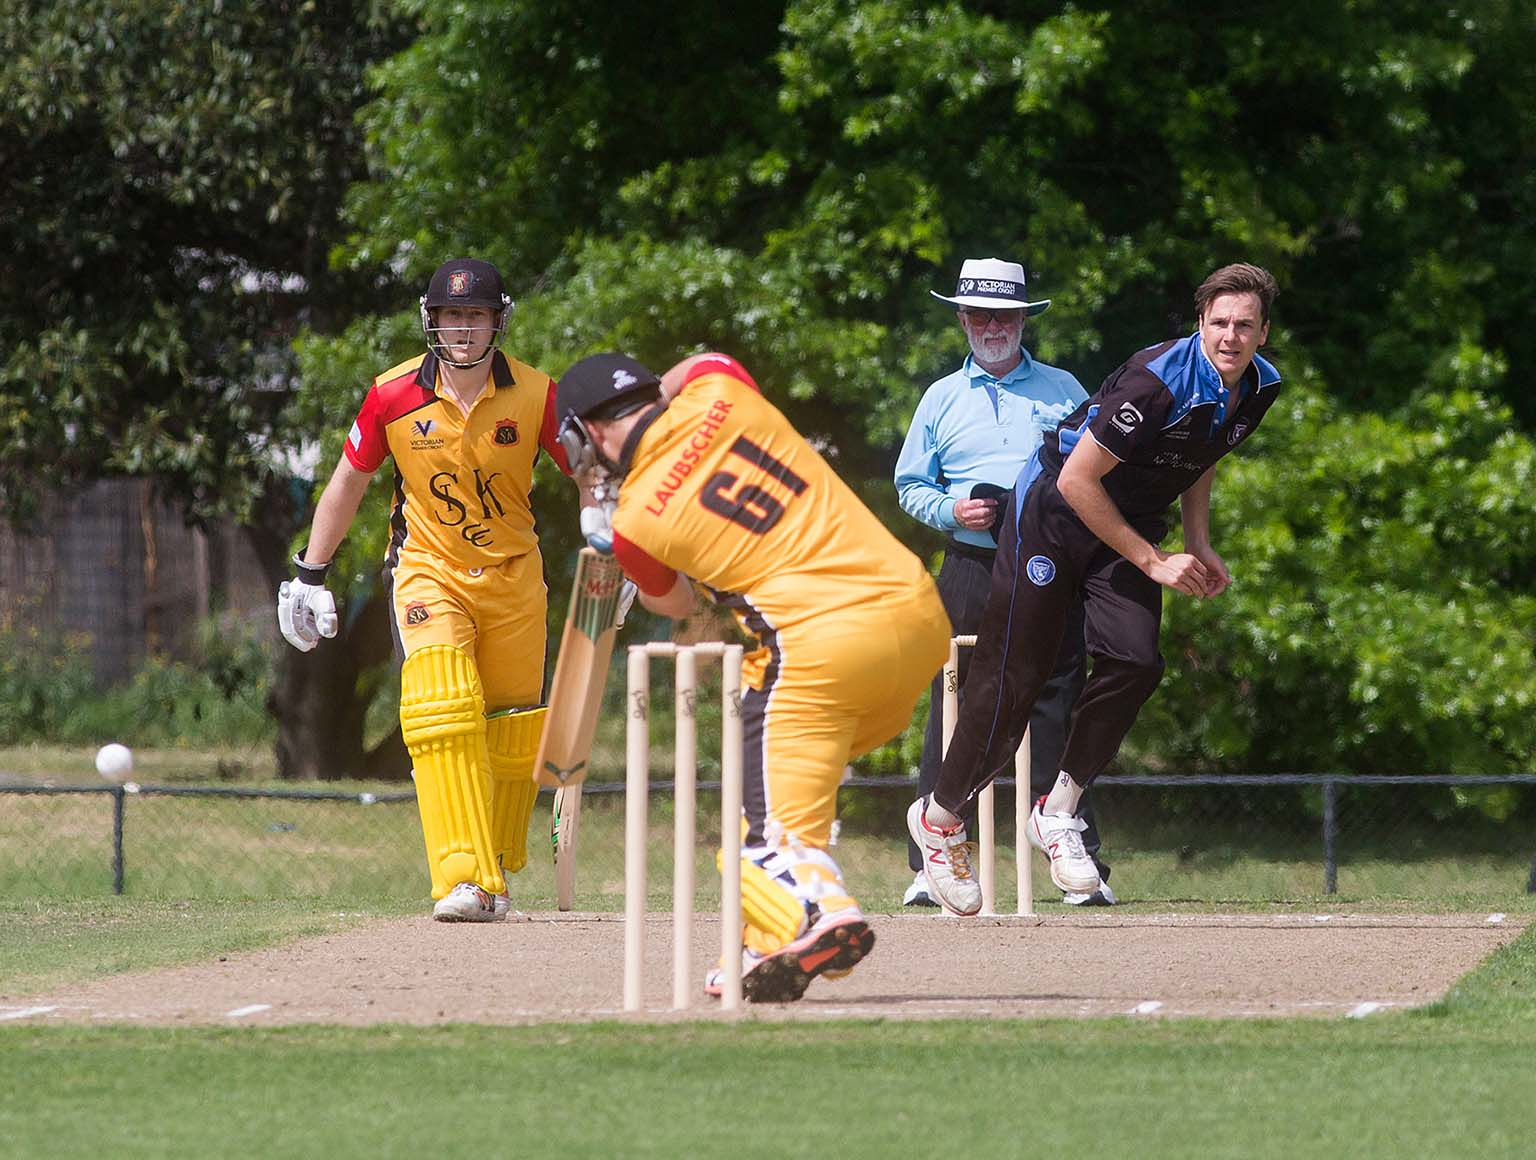 An action shot showing two batsmen, a bowler and an umpire at a cricket match